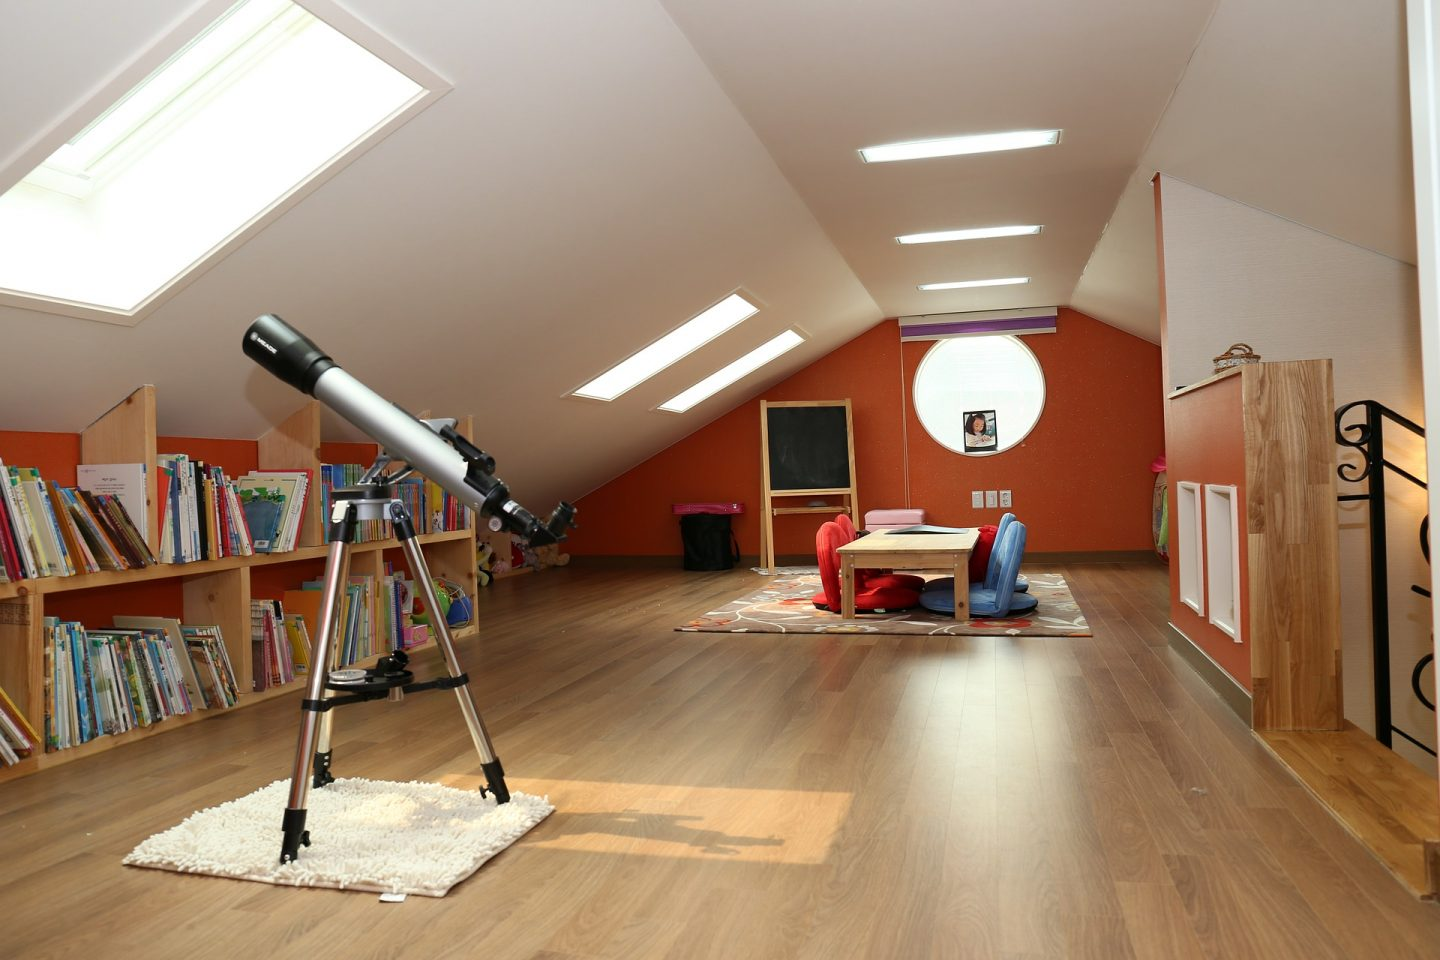 Cleaning and Maintaining Amtico Flooring is Now Easy